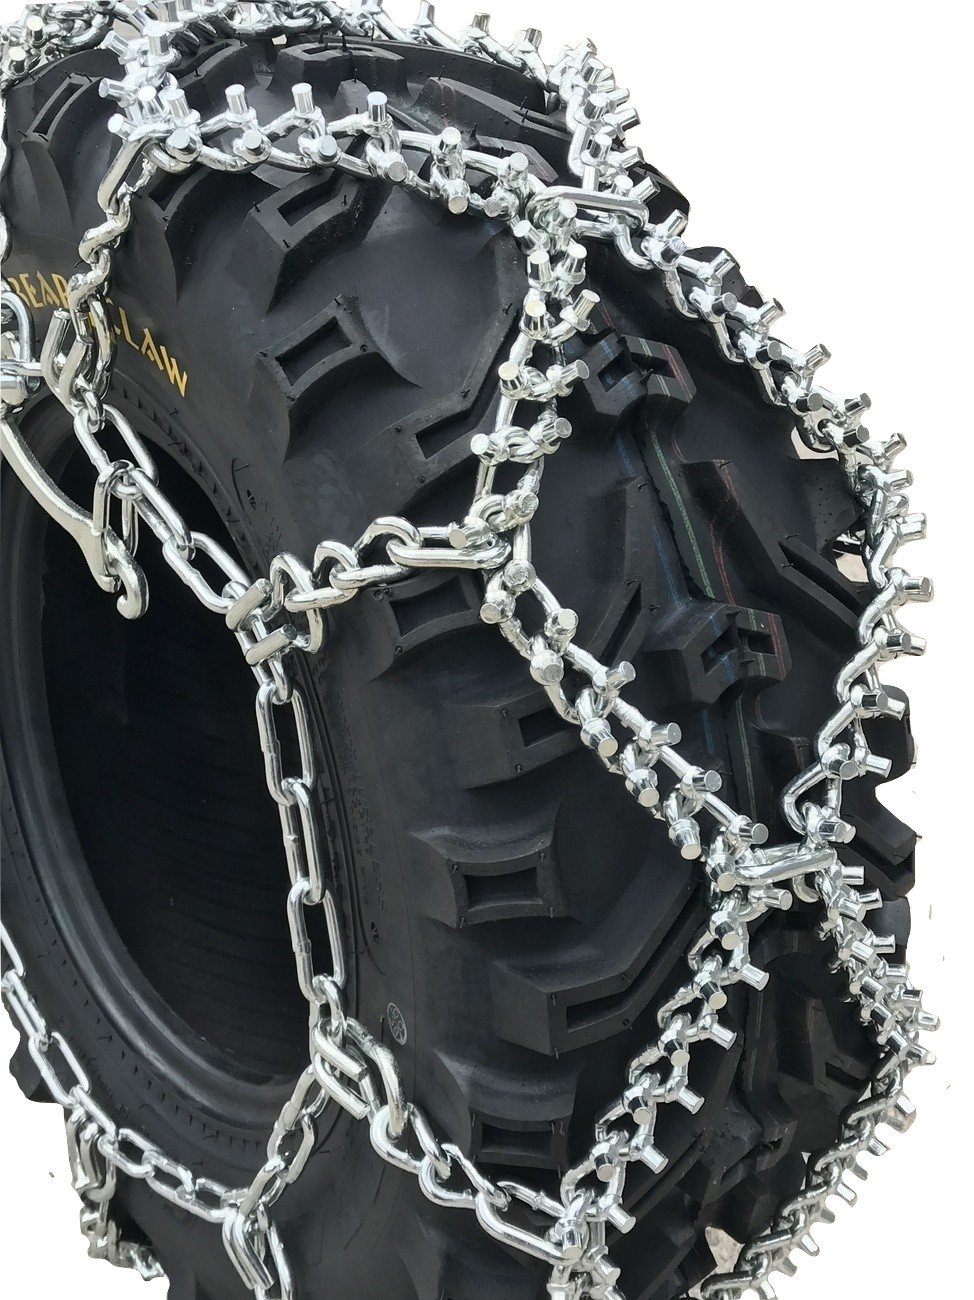 TireChain.com 27x11-14, 27 11 14 ATV UTV Stud Tire Chains, Spider Tightners by TireChain.com